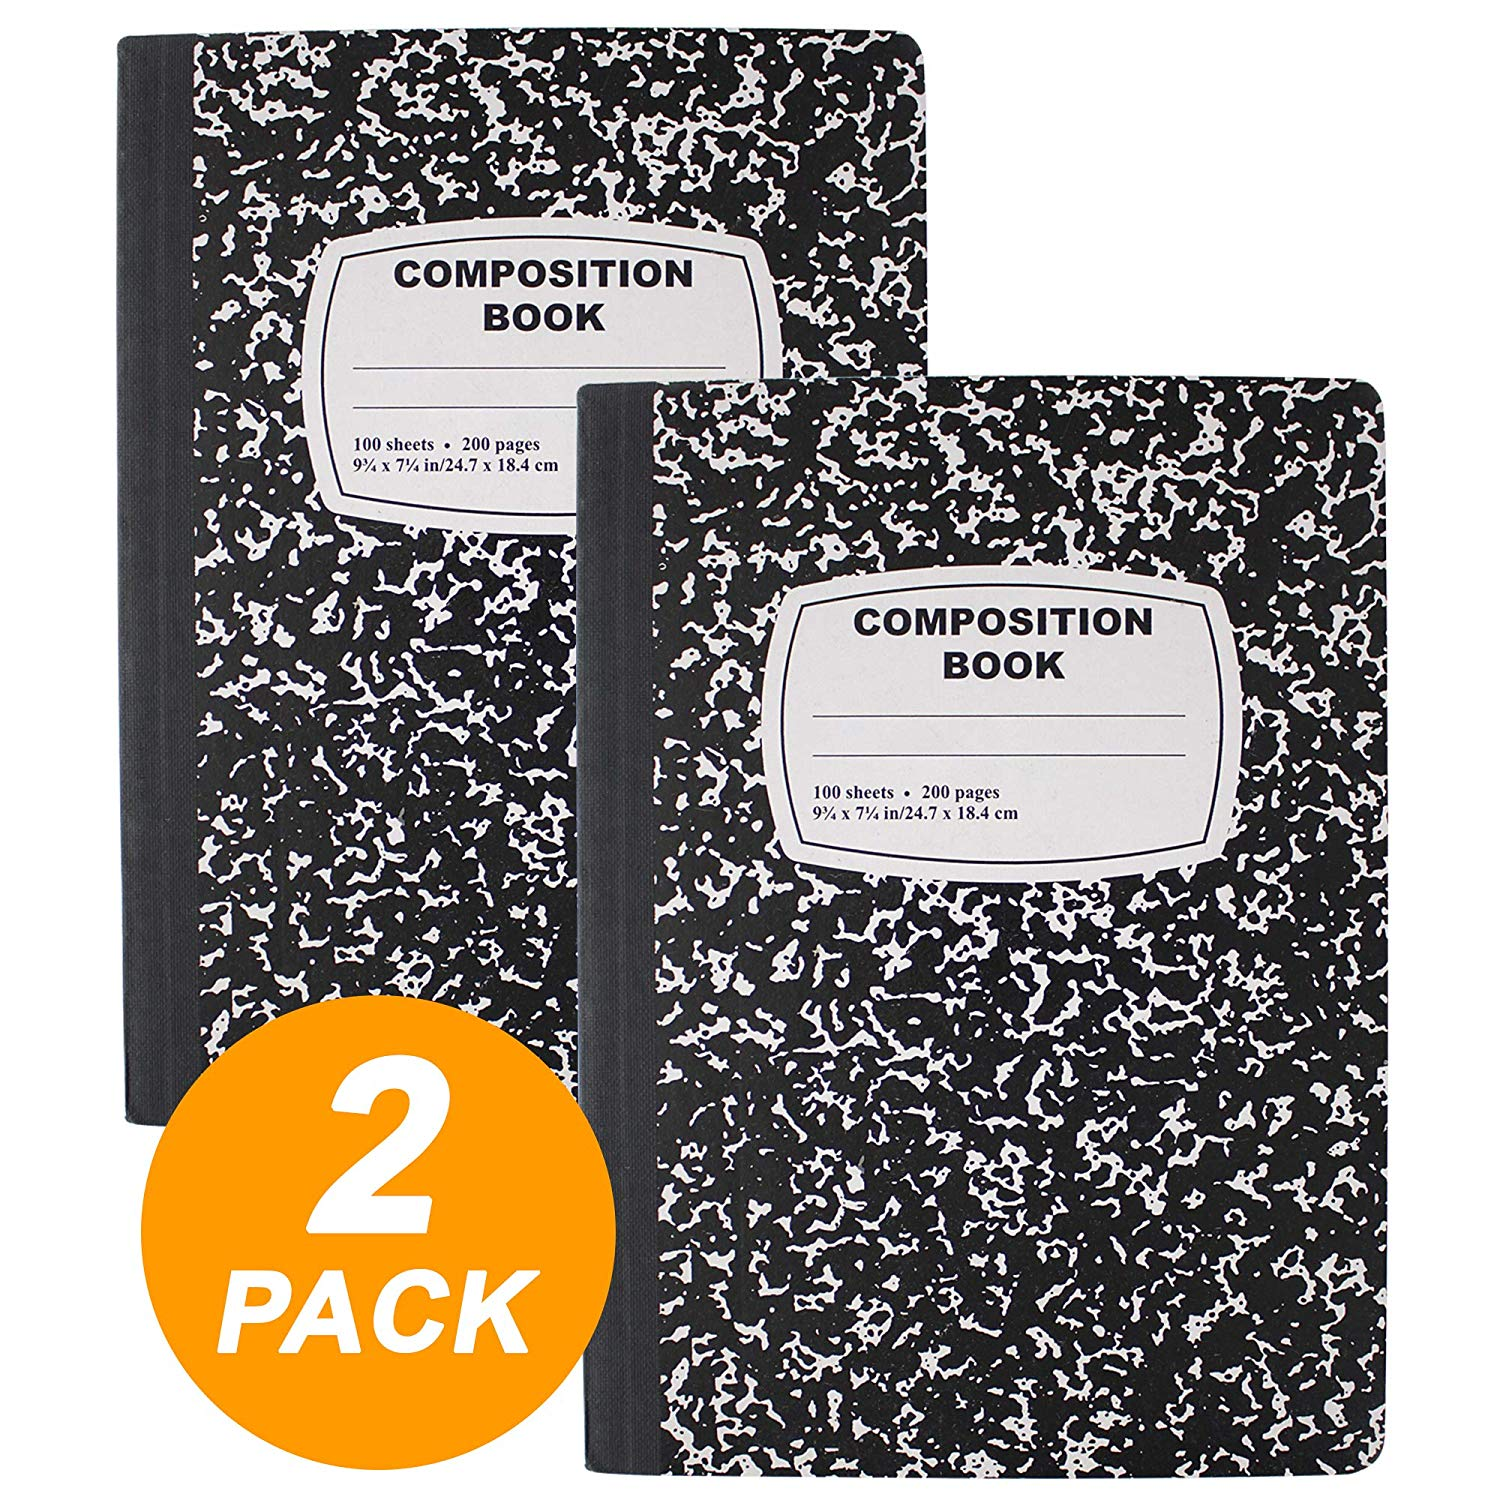 Black & White Marble Composition Book with 100 Sheets of Wide Ruled White Paper (2 Pack)